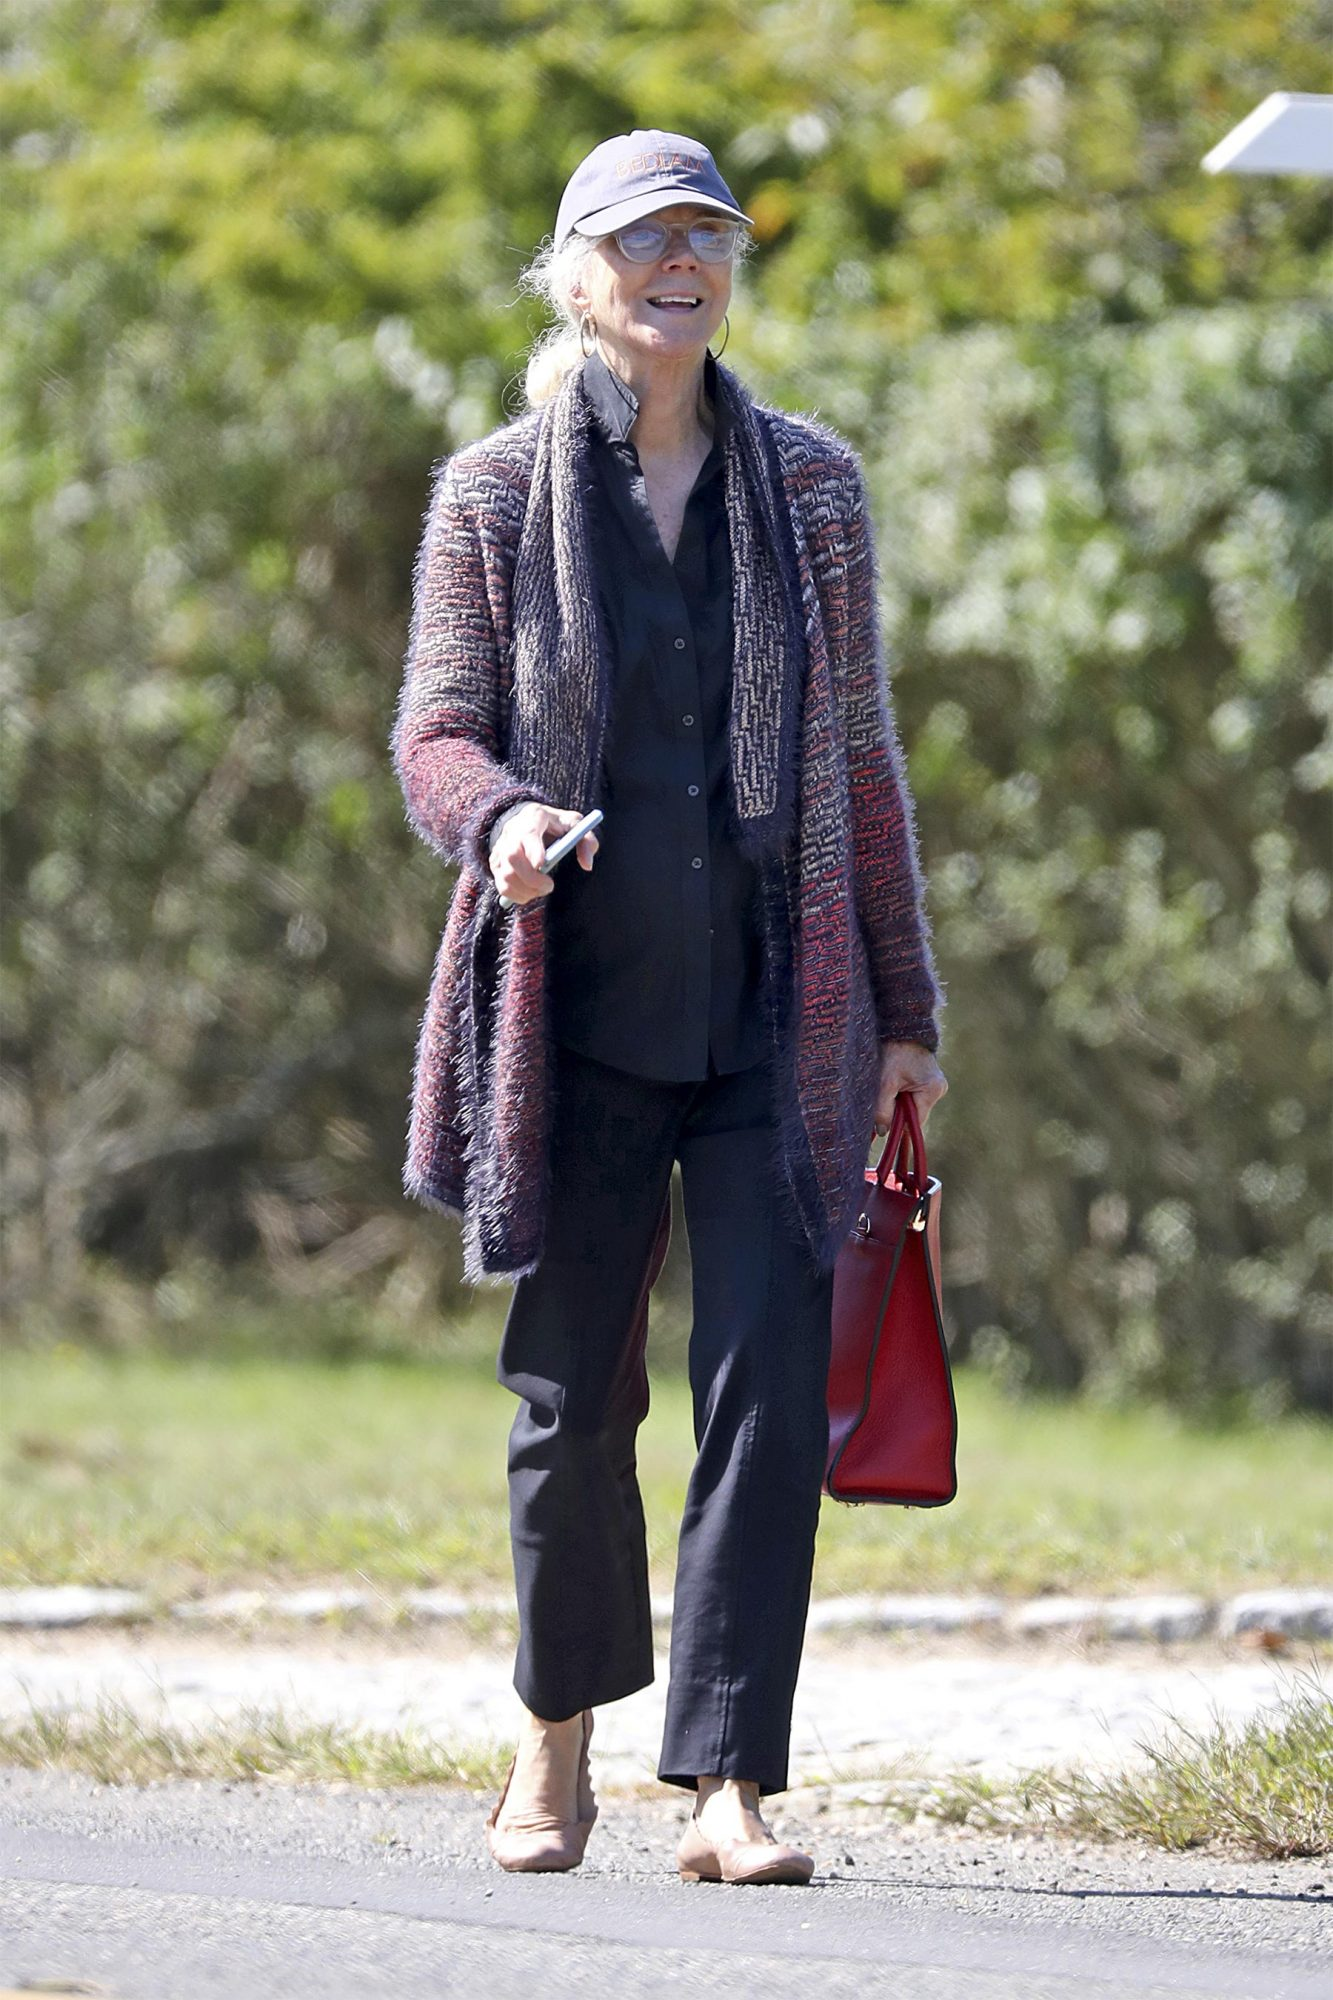 EXCLUSIVE: Blythe Danner is Pictured the Morning After Hosting the Paltrow-Falchuk Wedding in East Hampton